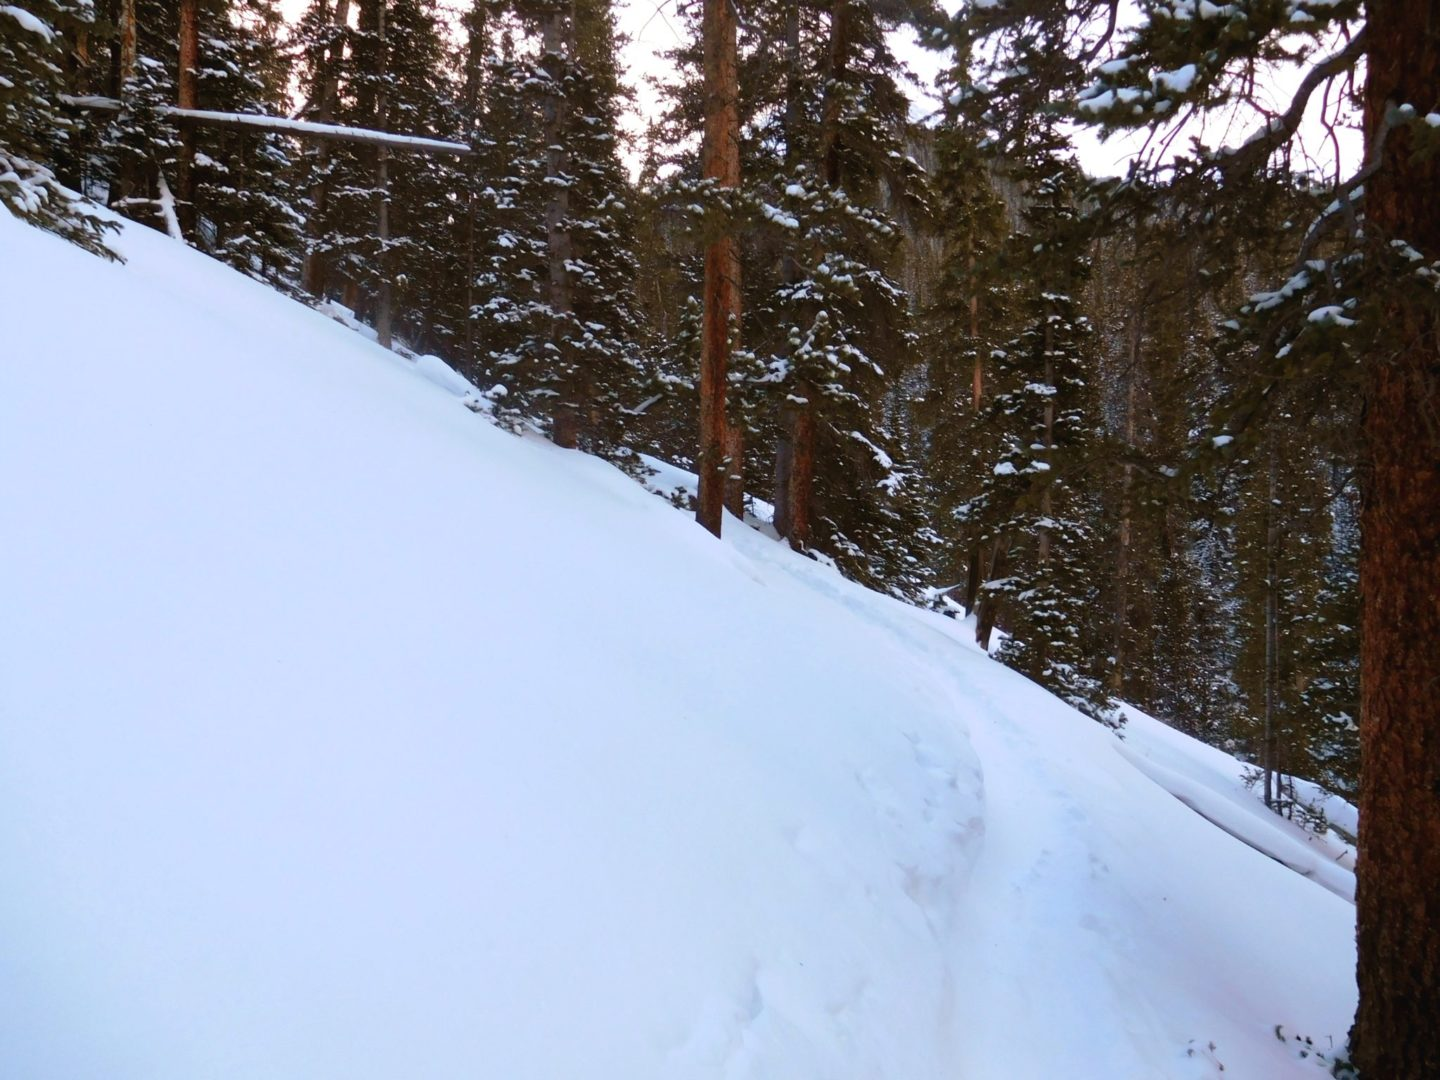 Deep snow and slow going